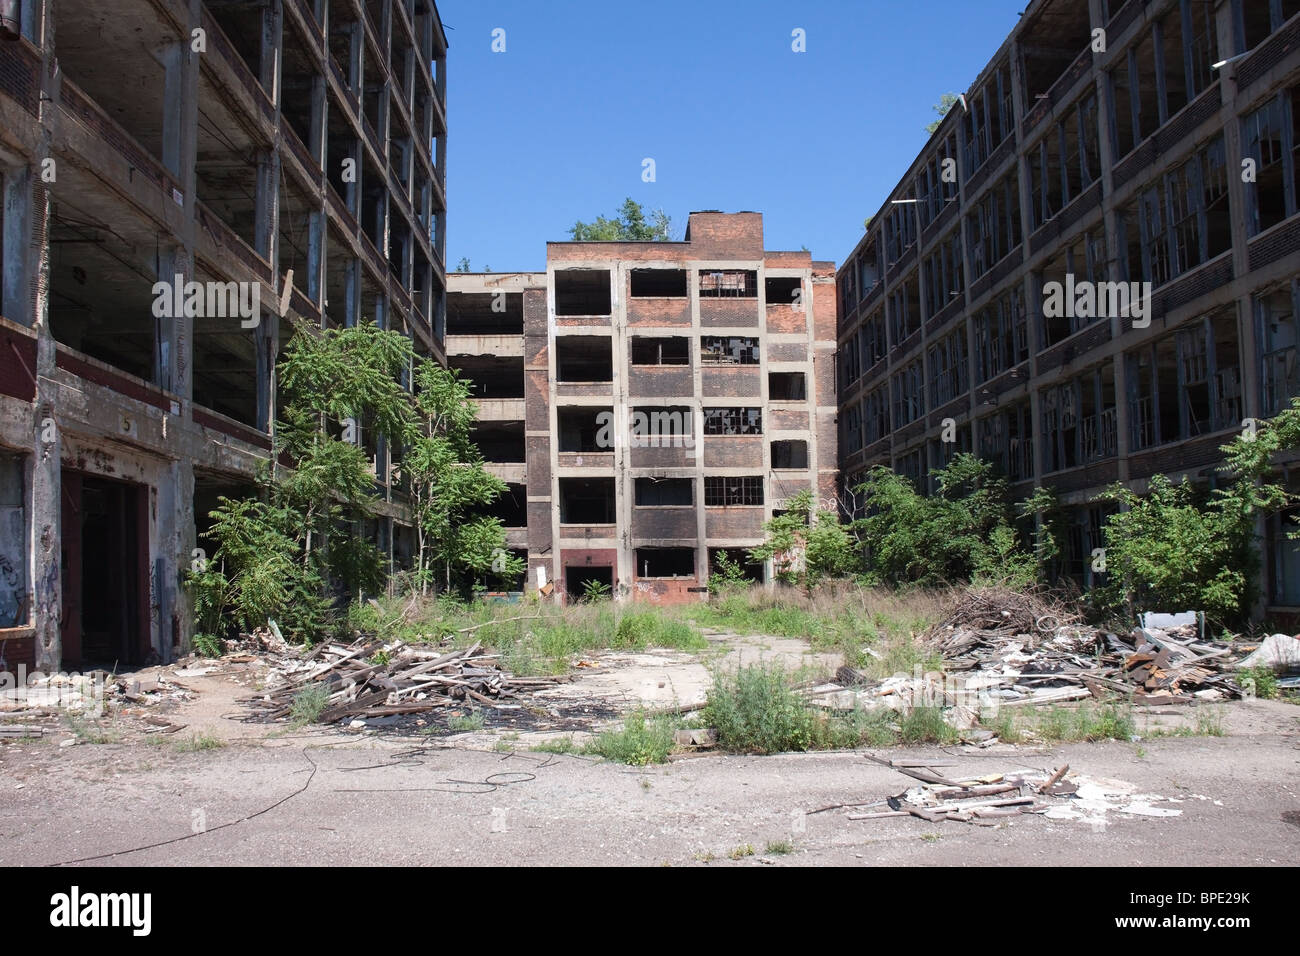 Abandoned Packard automobile plant in Detroit, Michigan, USA - Stock Image